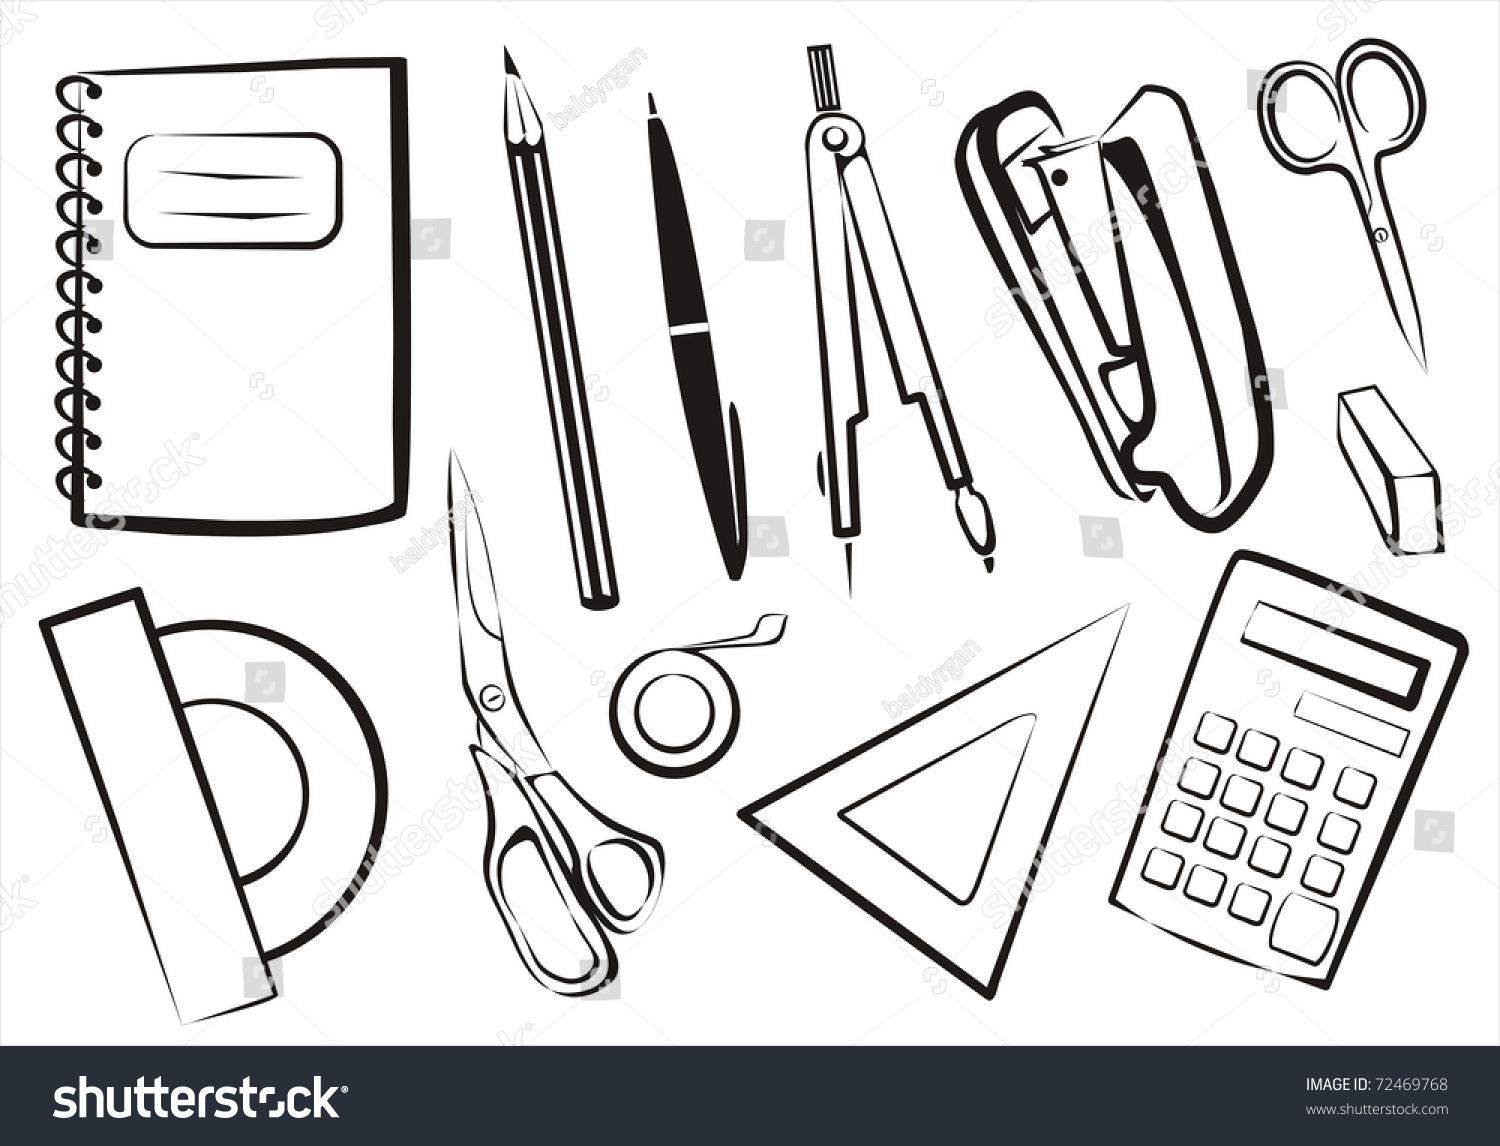 Notebook And Pen Sketch Stock Vector Art More Images Of: Stationery School Goods Set Isolated Equipment Stock